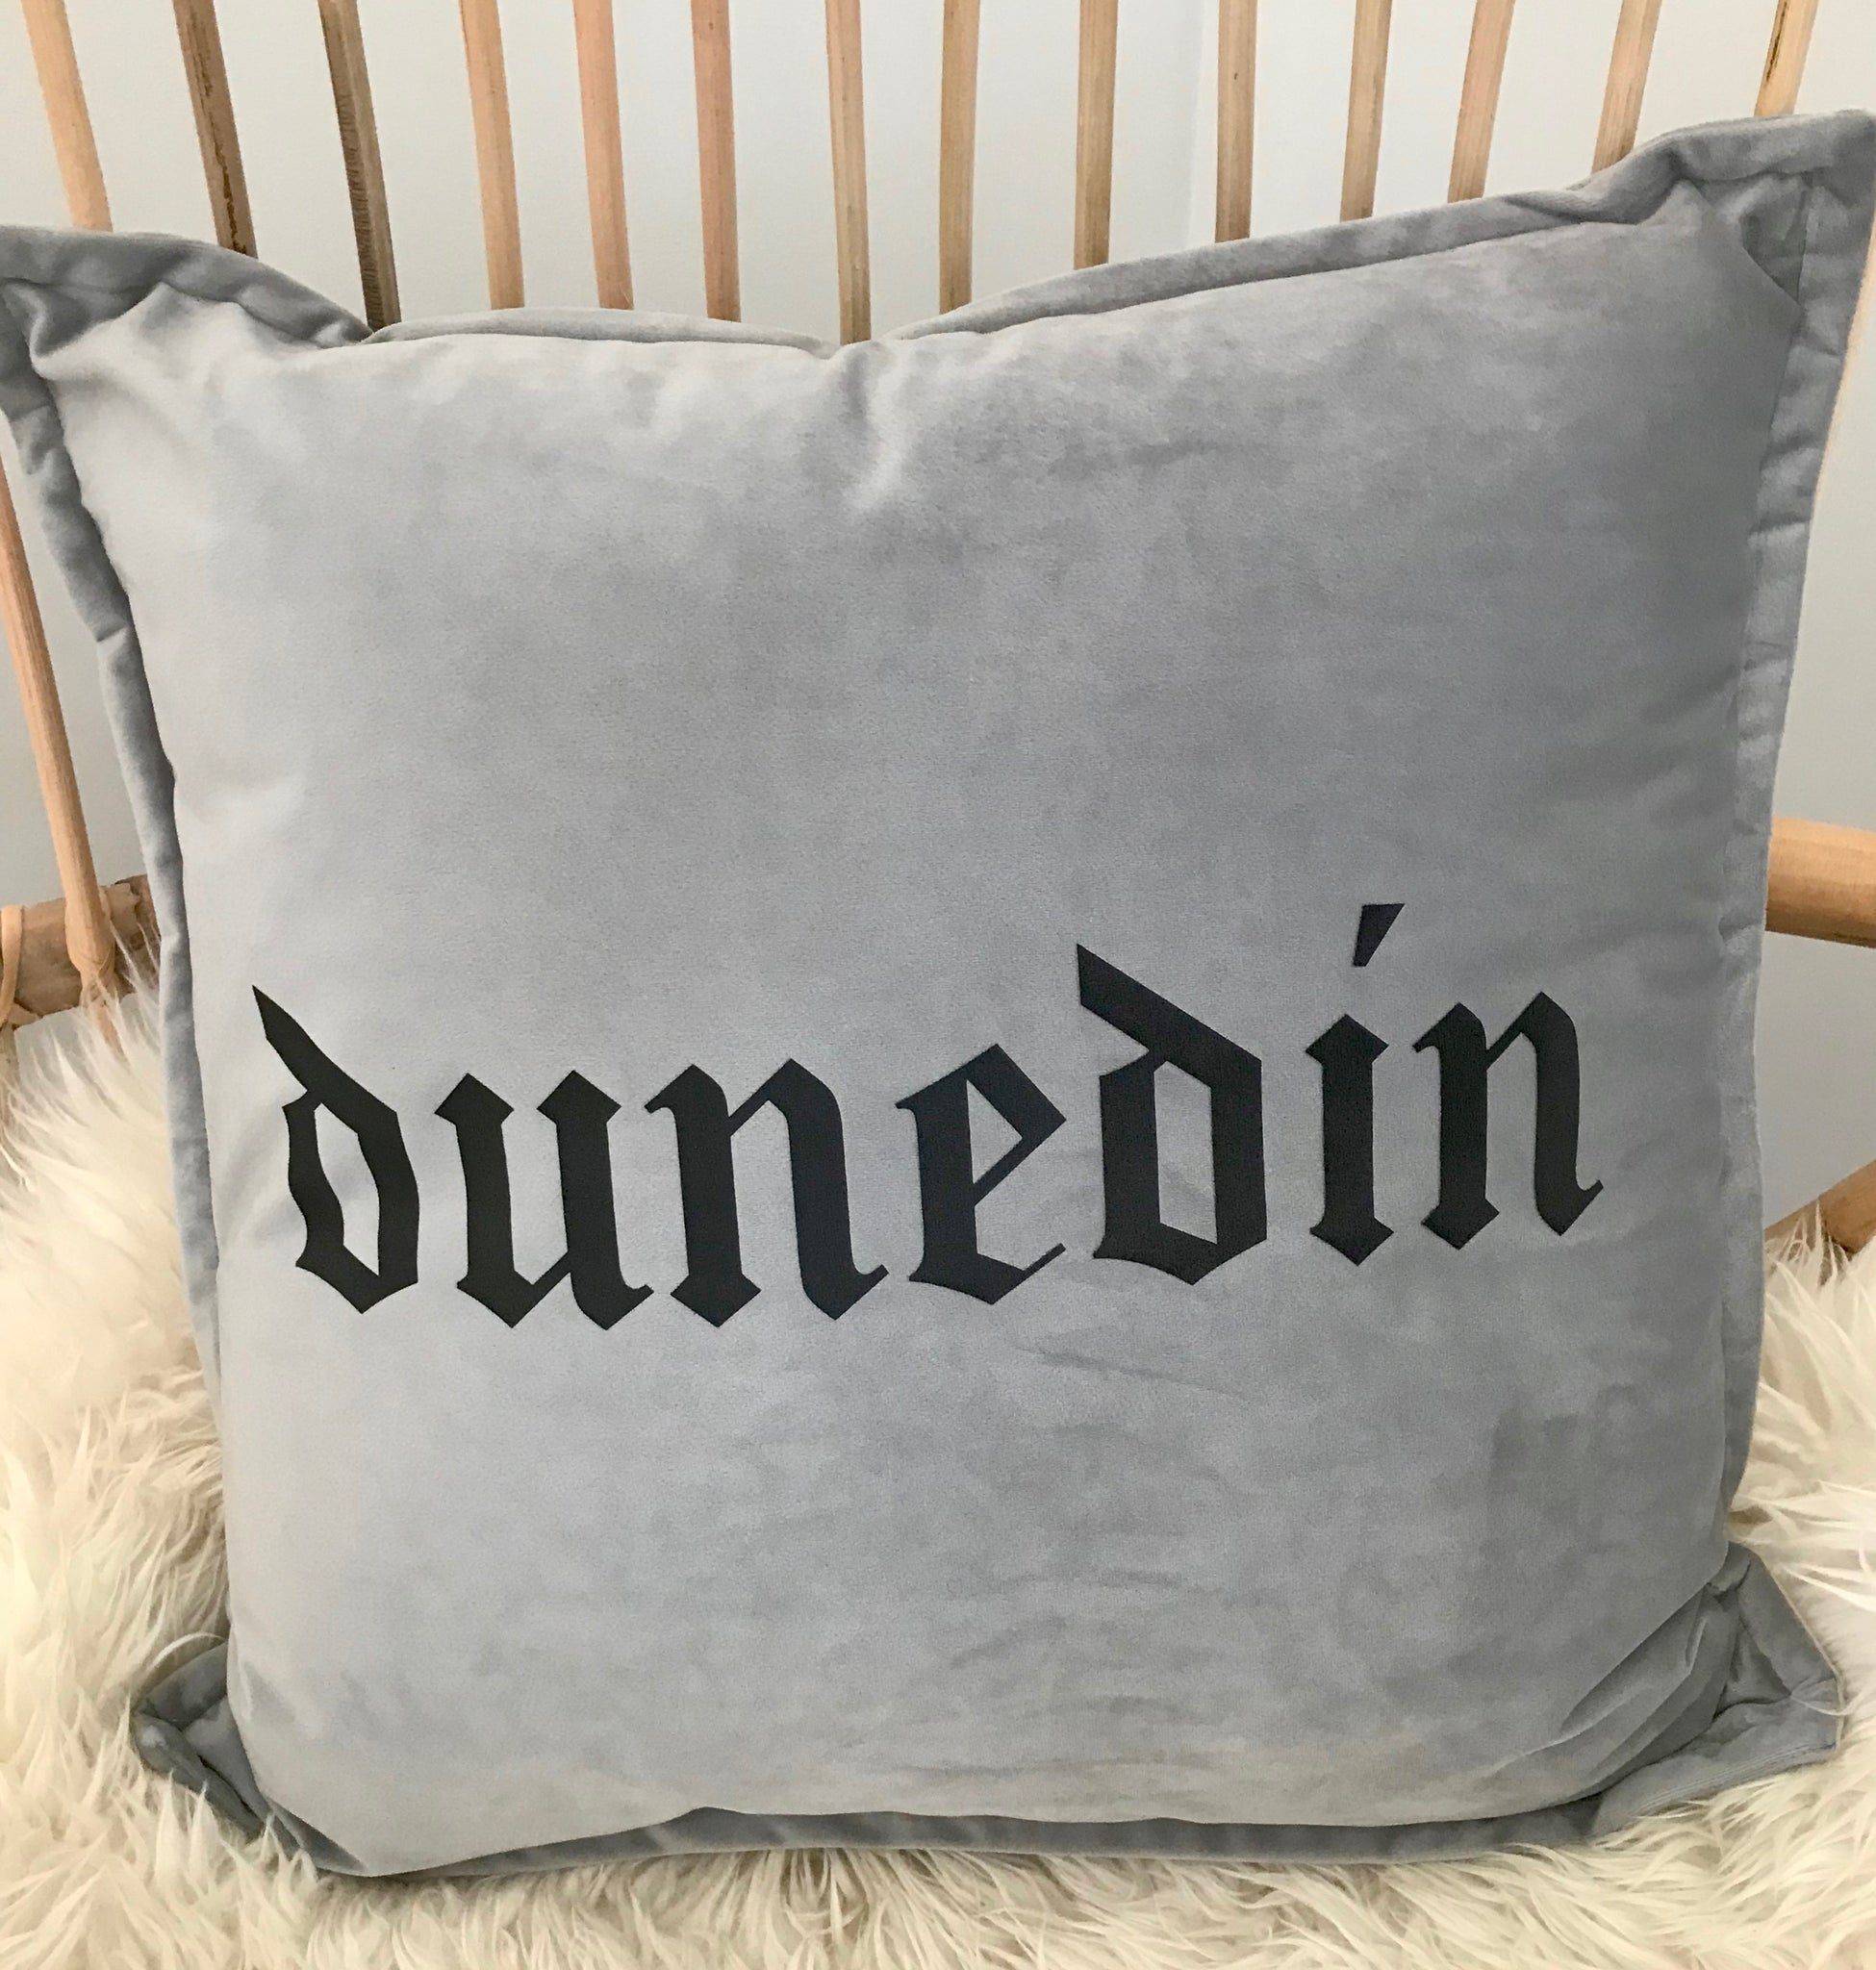 Dunedin Velvet Cushion Cover - Light Grey